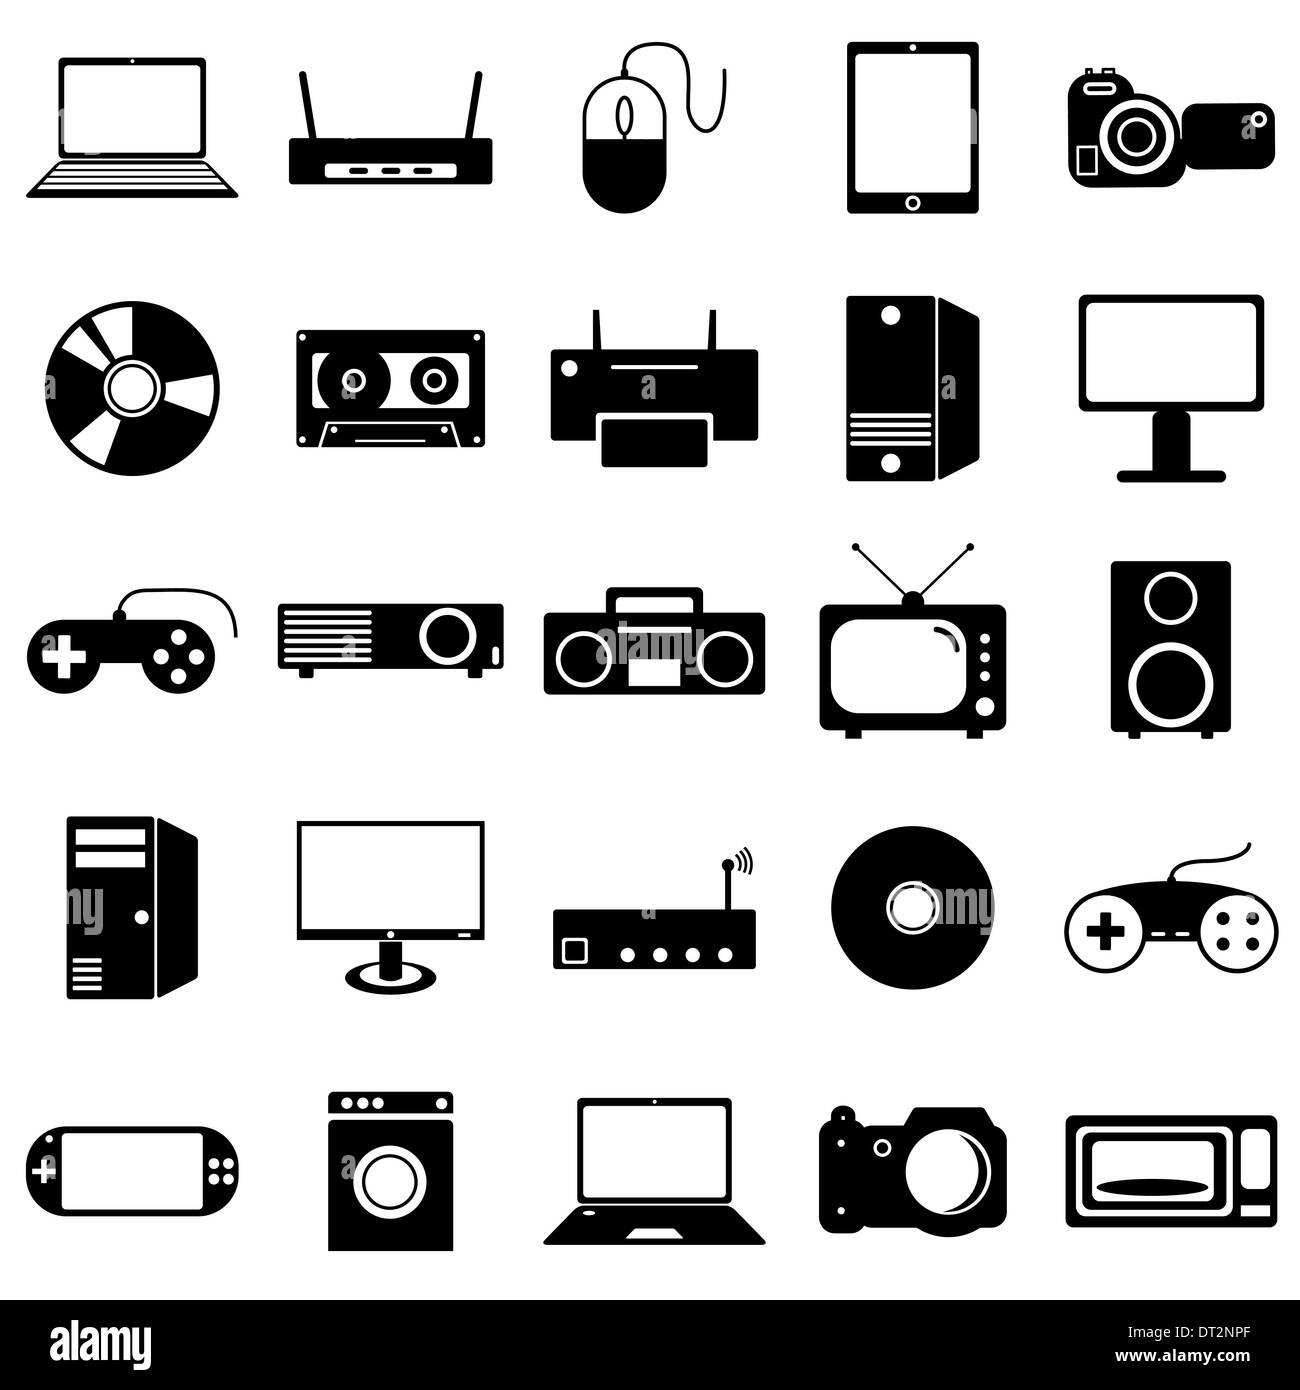 Collection Flat Icons Electronic Devices Symbols Stock Photo